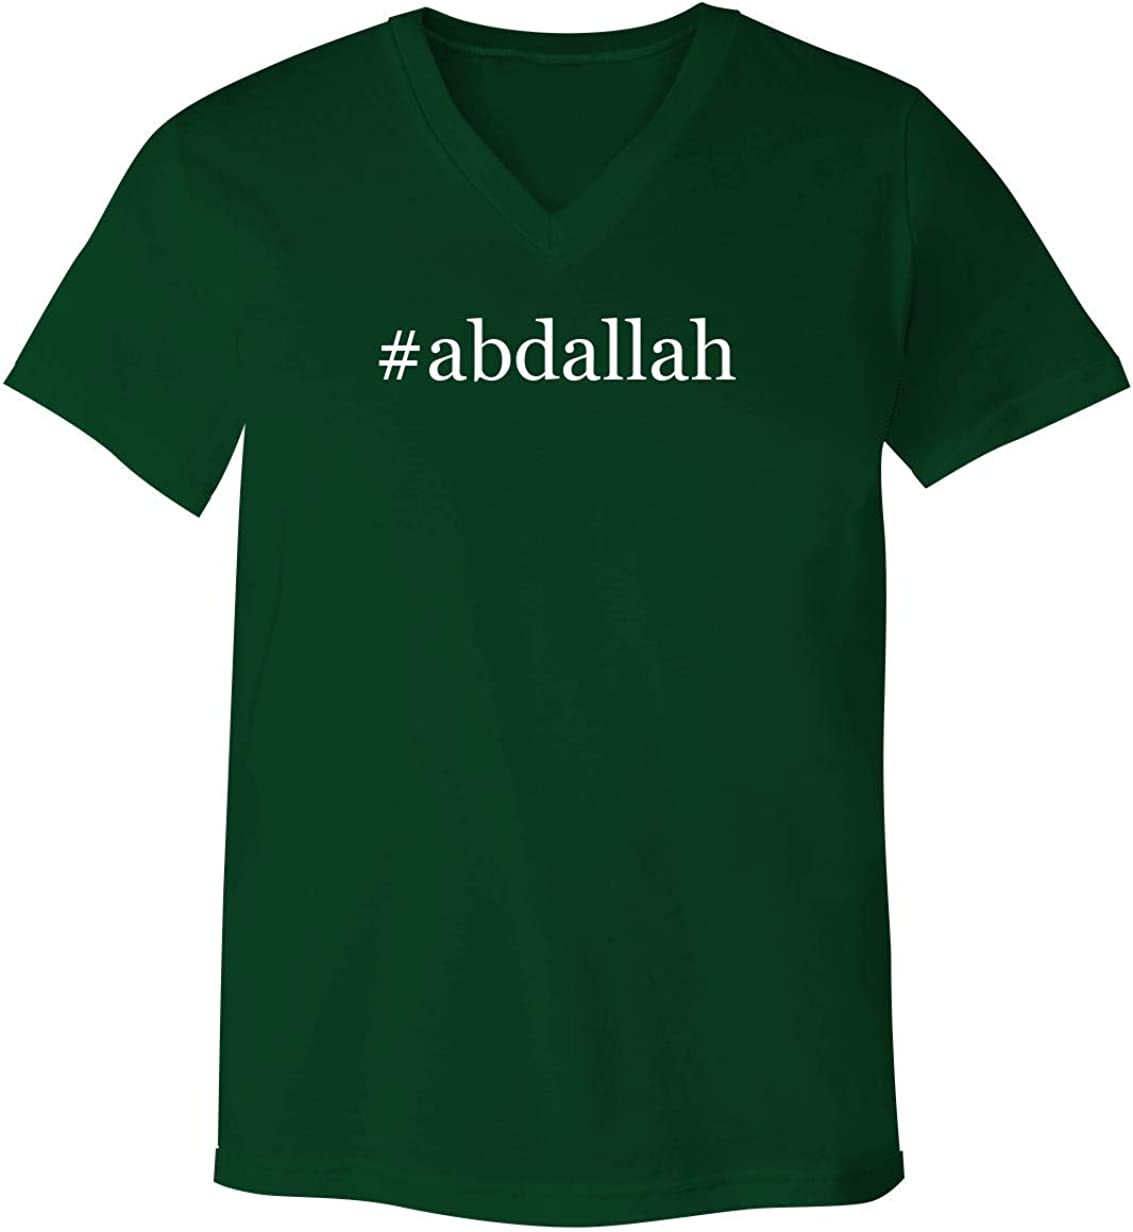 #Abdallah - Adult Bella Canvas 3005 Unisex V-Neck T-Shirt 51ZIwxZrYyL